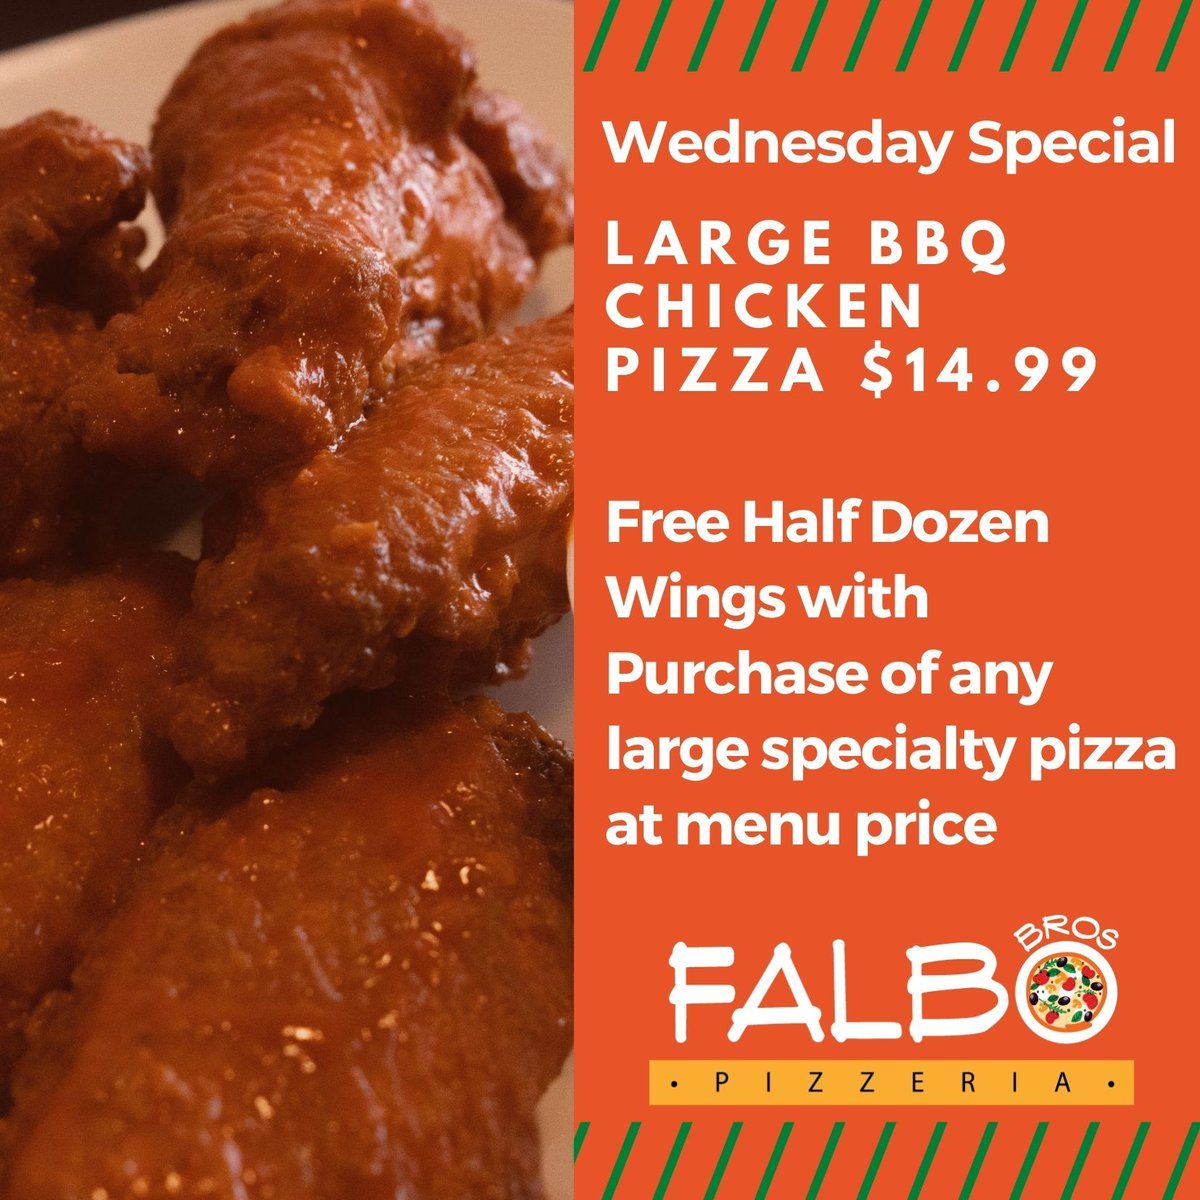 Wing Wednesdays! Snag some free wings with your purchase of any large specialty pizza at menu price every Wednesday at Falbos Coralville!  #Falbos #wings #Wednesday #pizza #delivery #Coralville #delicious #food